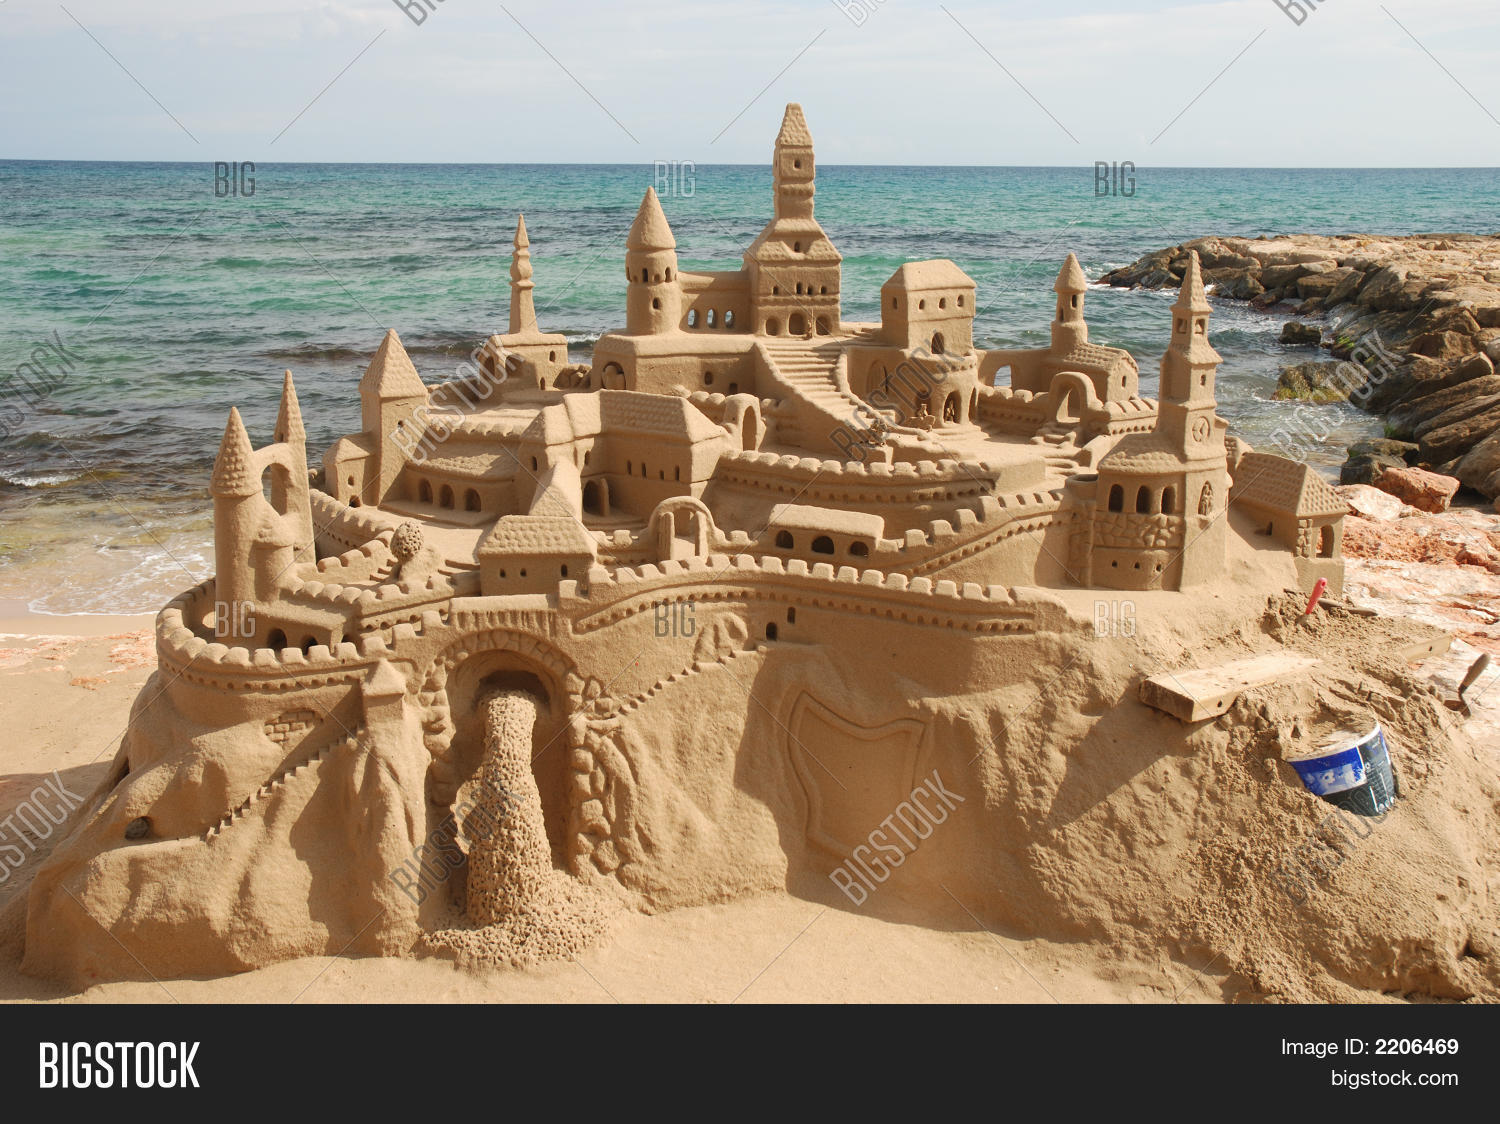 Sandcastle On The Beach Sand Castle Images Ilrations Vectors Free Stock